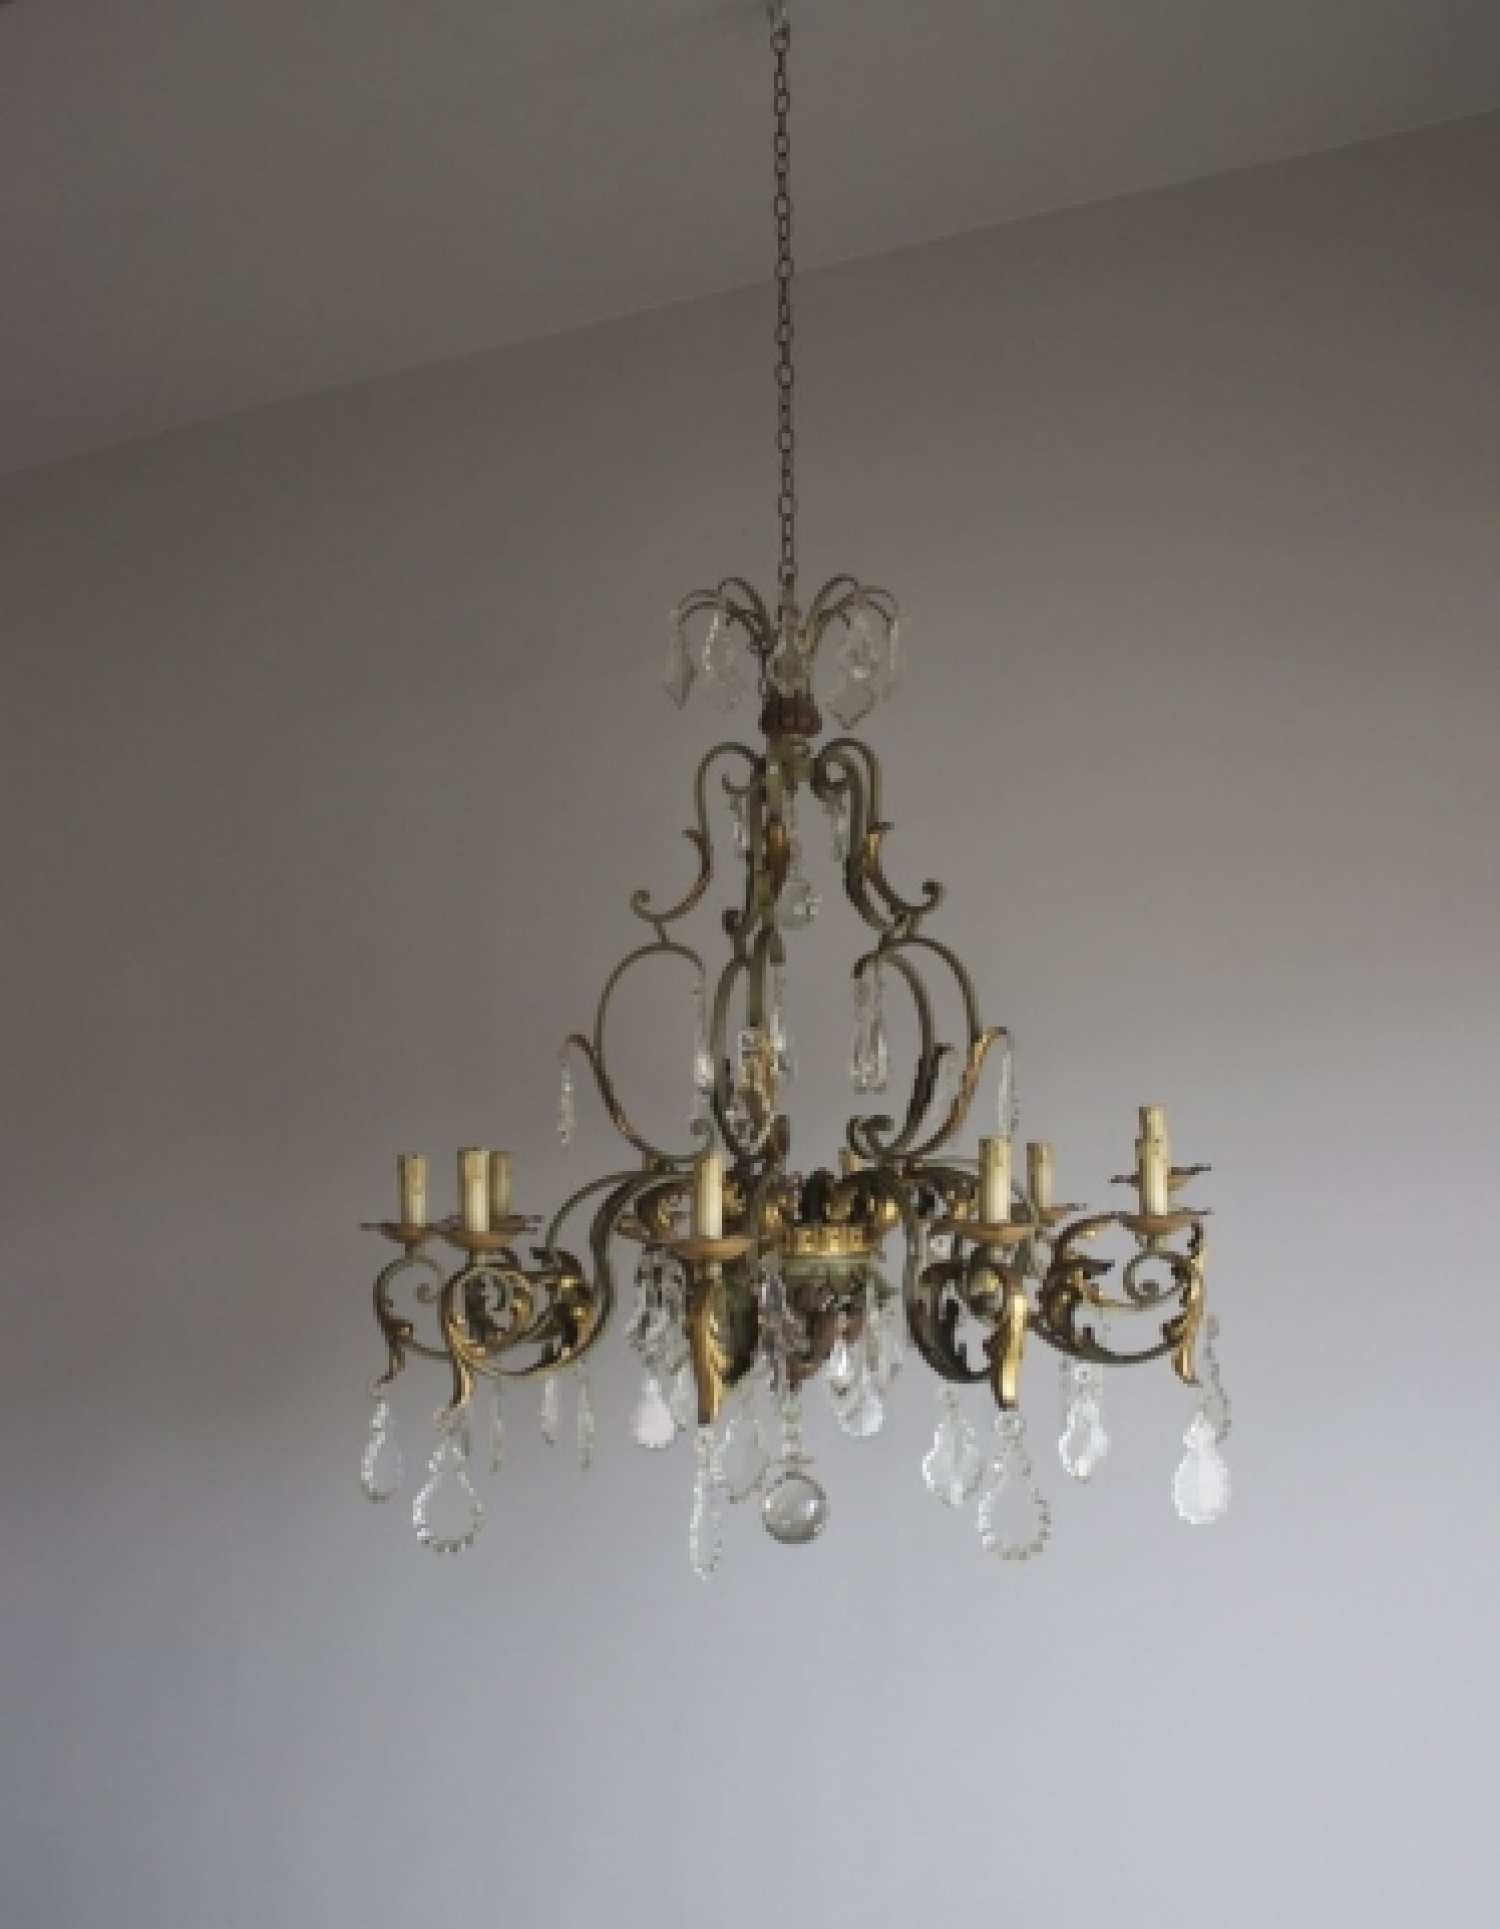 Large antique chandeliers part of our antique lighting range large antique chandeliers part of our antique lighting range image 2 arubaitofo Image collections